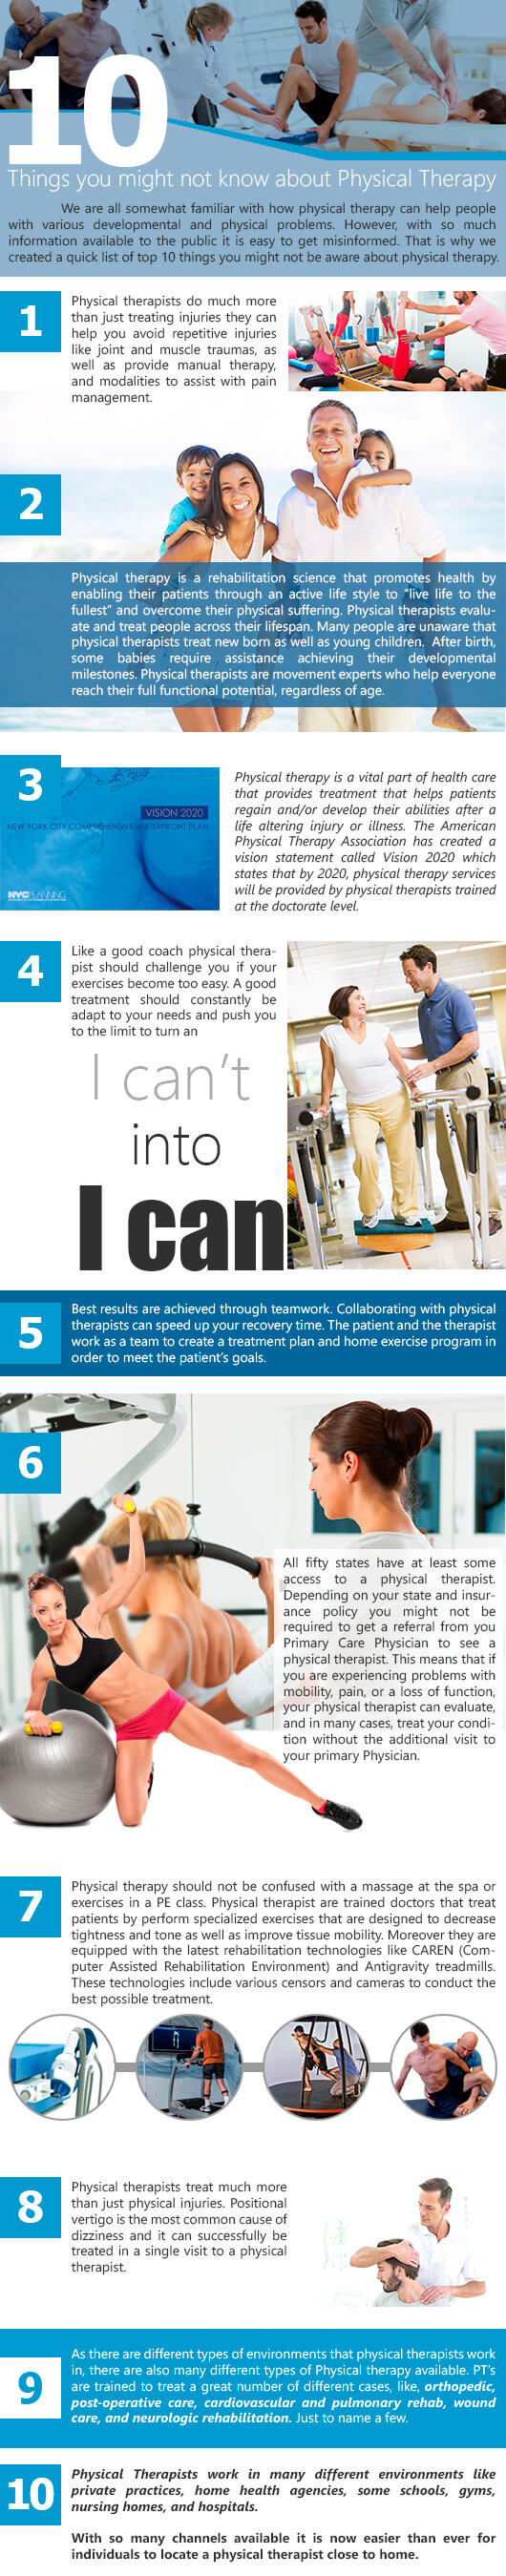 10-Things-you-might-not-know-about-Physical-Therapy-infographic